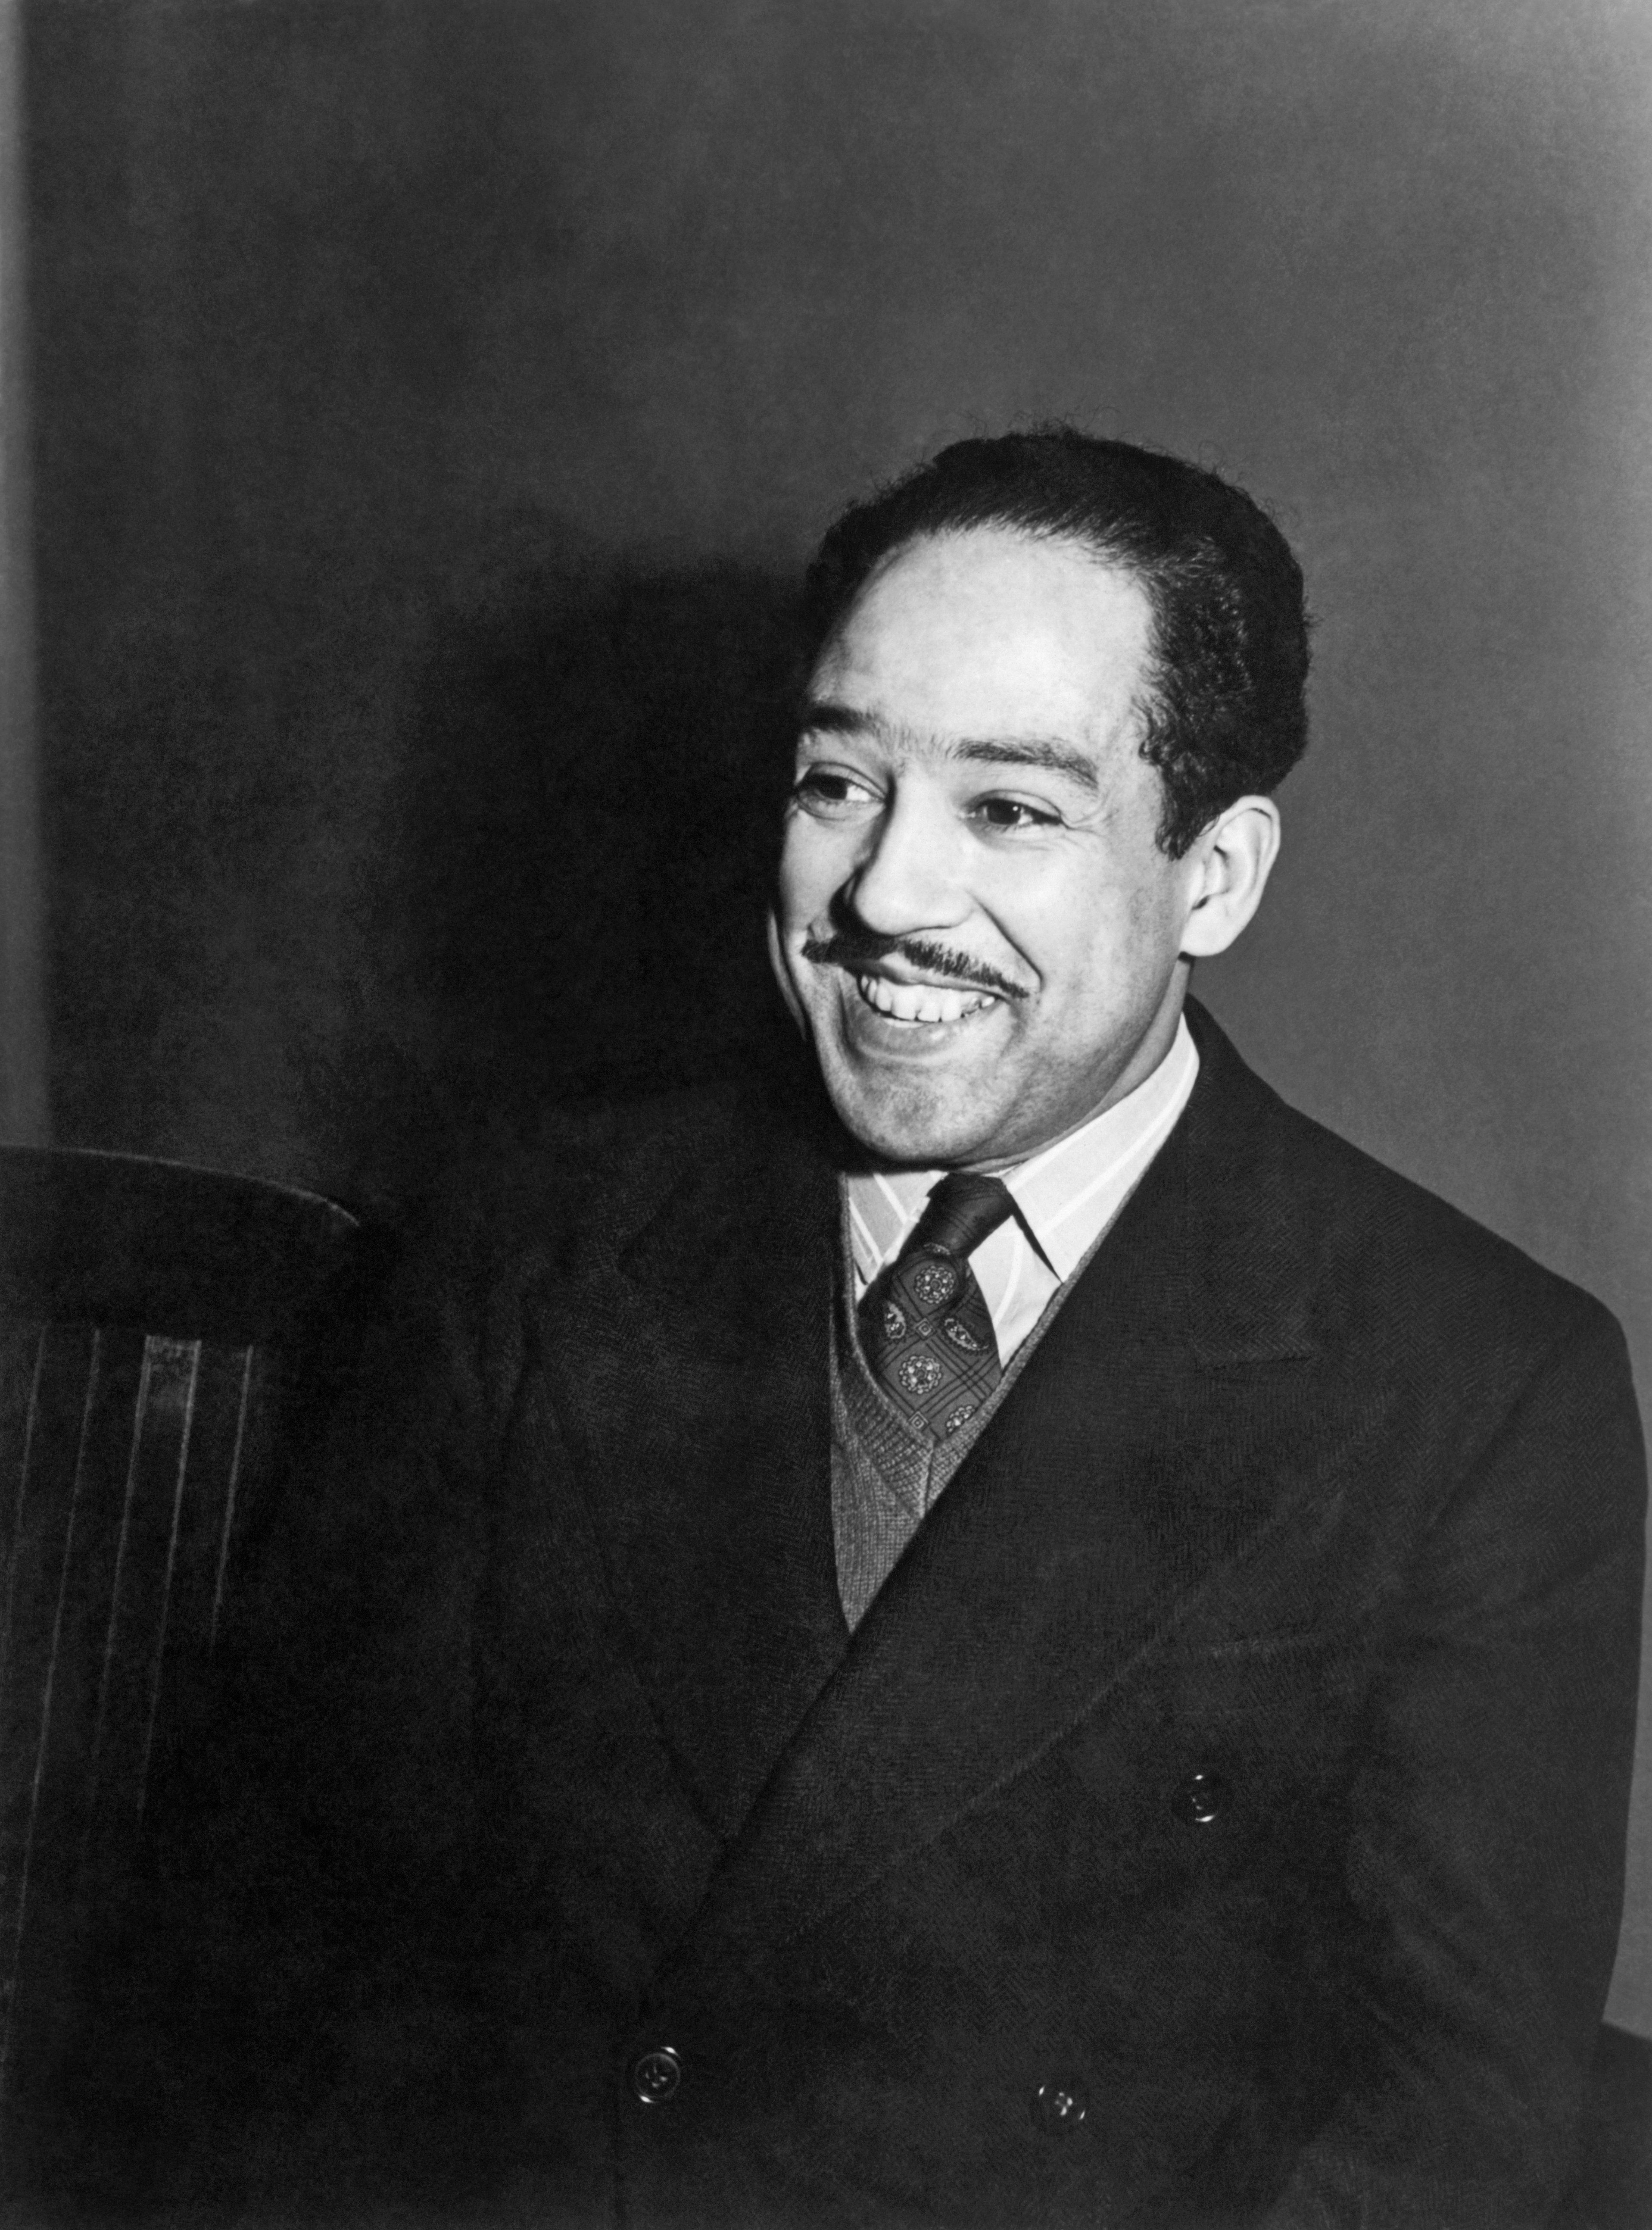 A portrait of poet and playwright Langston Hughes, Chicago, Illinois, April 1942. (Photo by Jack Delano/Underwood Archives/Getty Images)